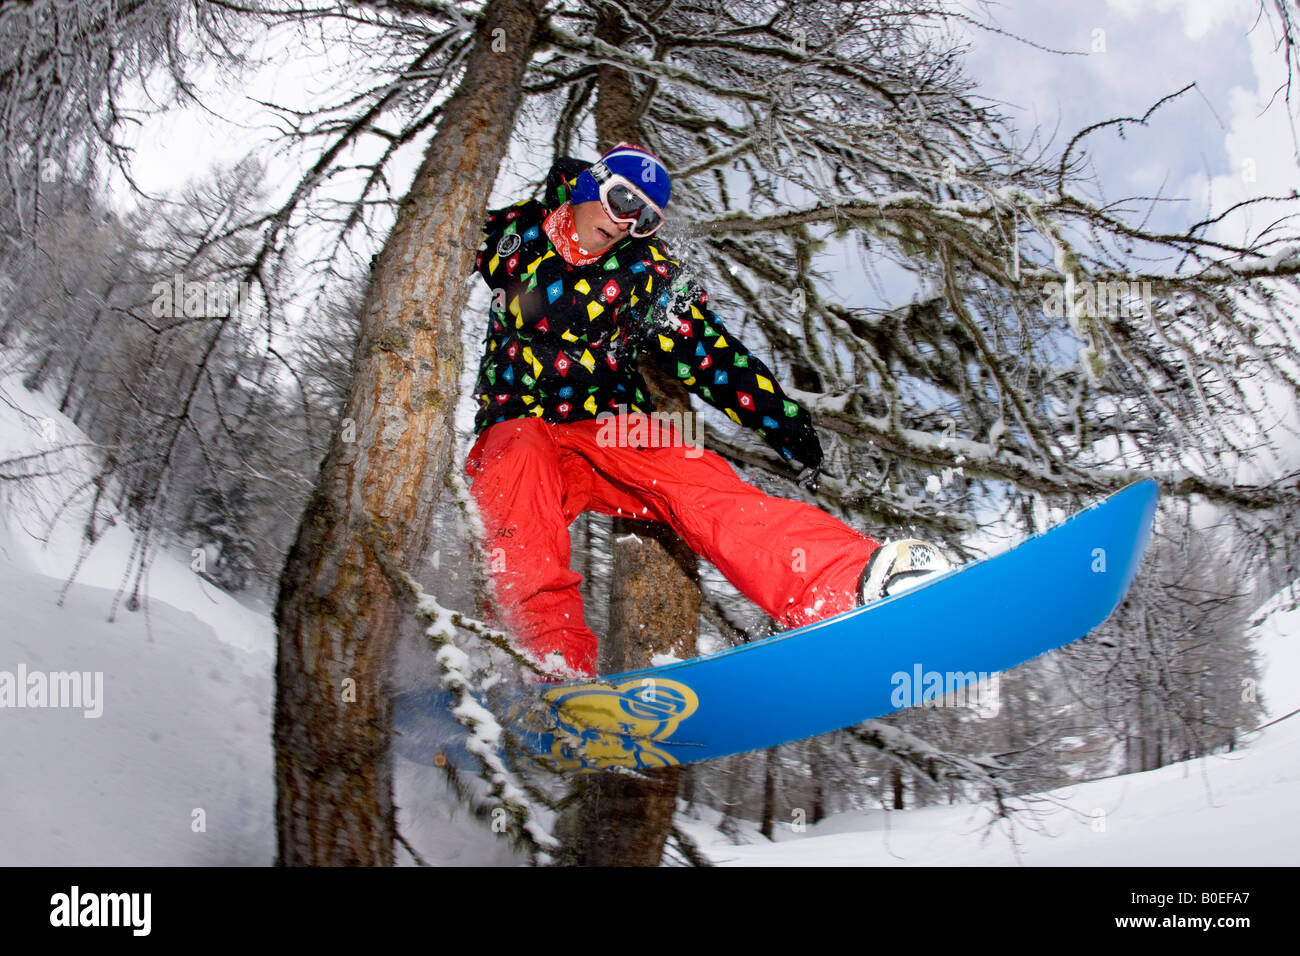 Snowboarder Jo Howard riding through a tree gap of piste in Tignes, France. - Stock Image